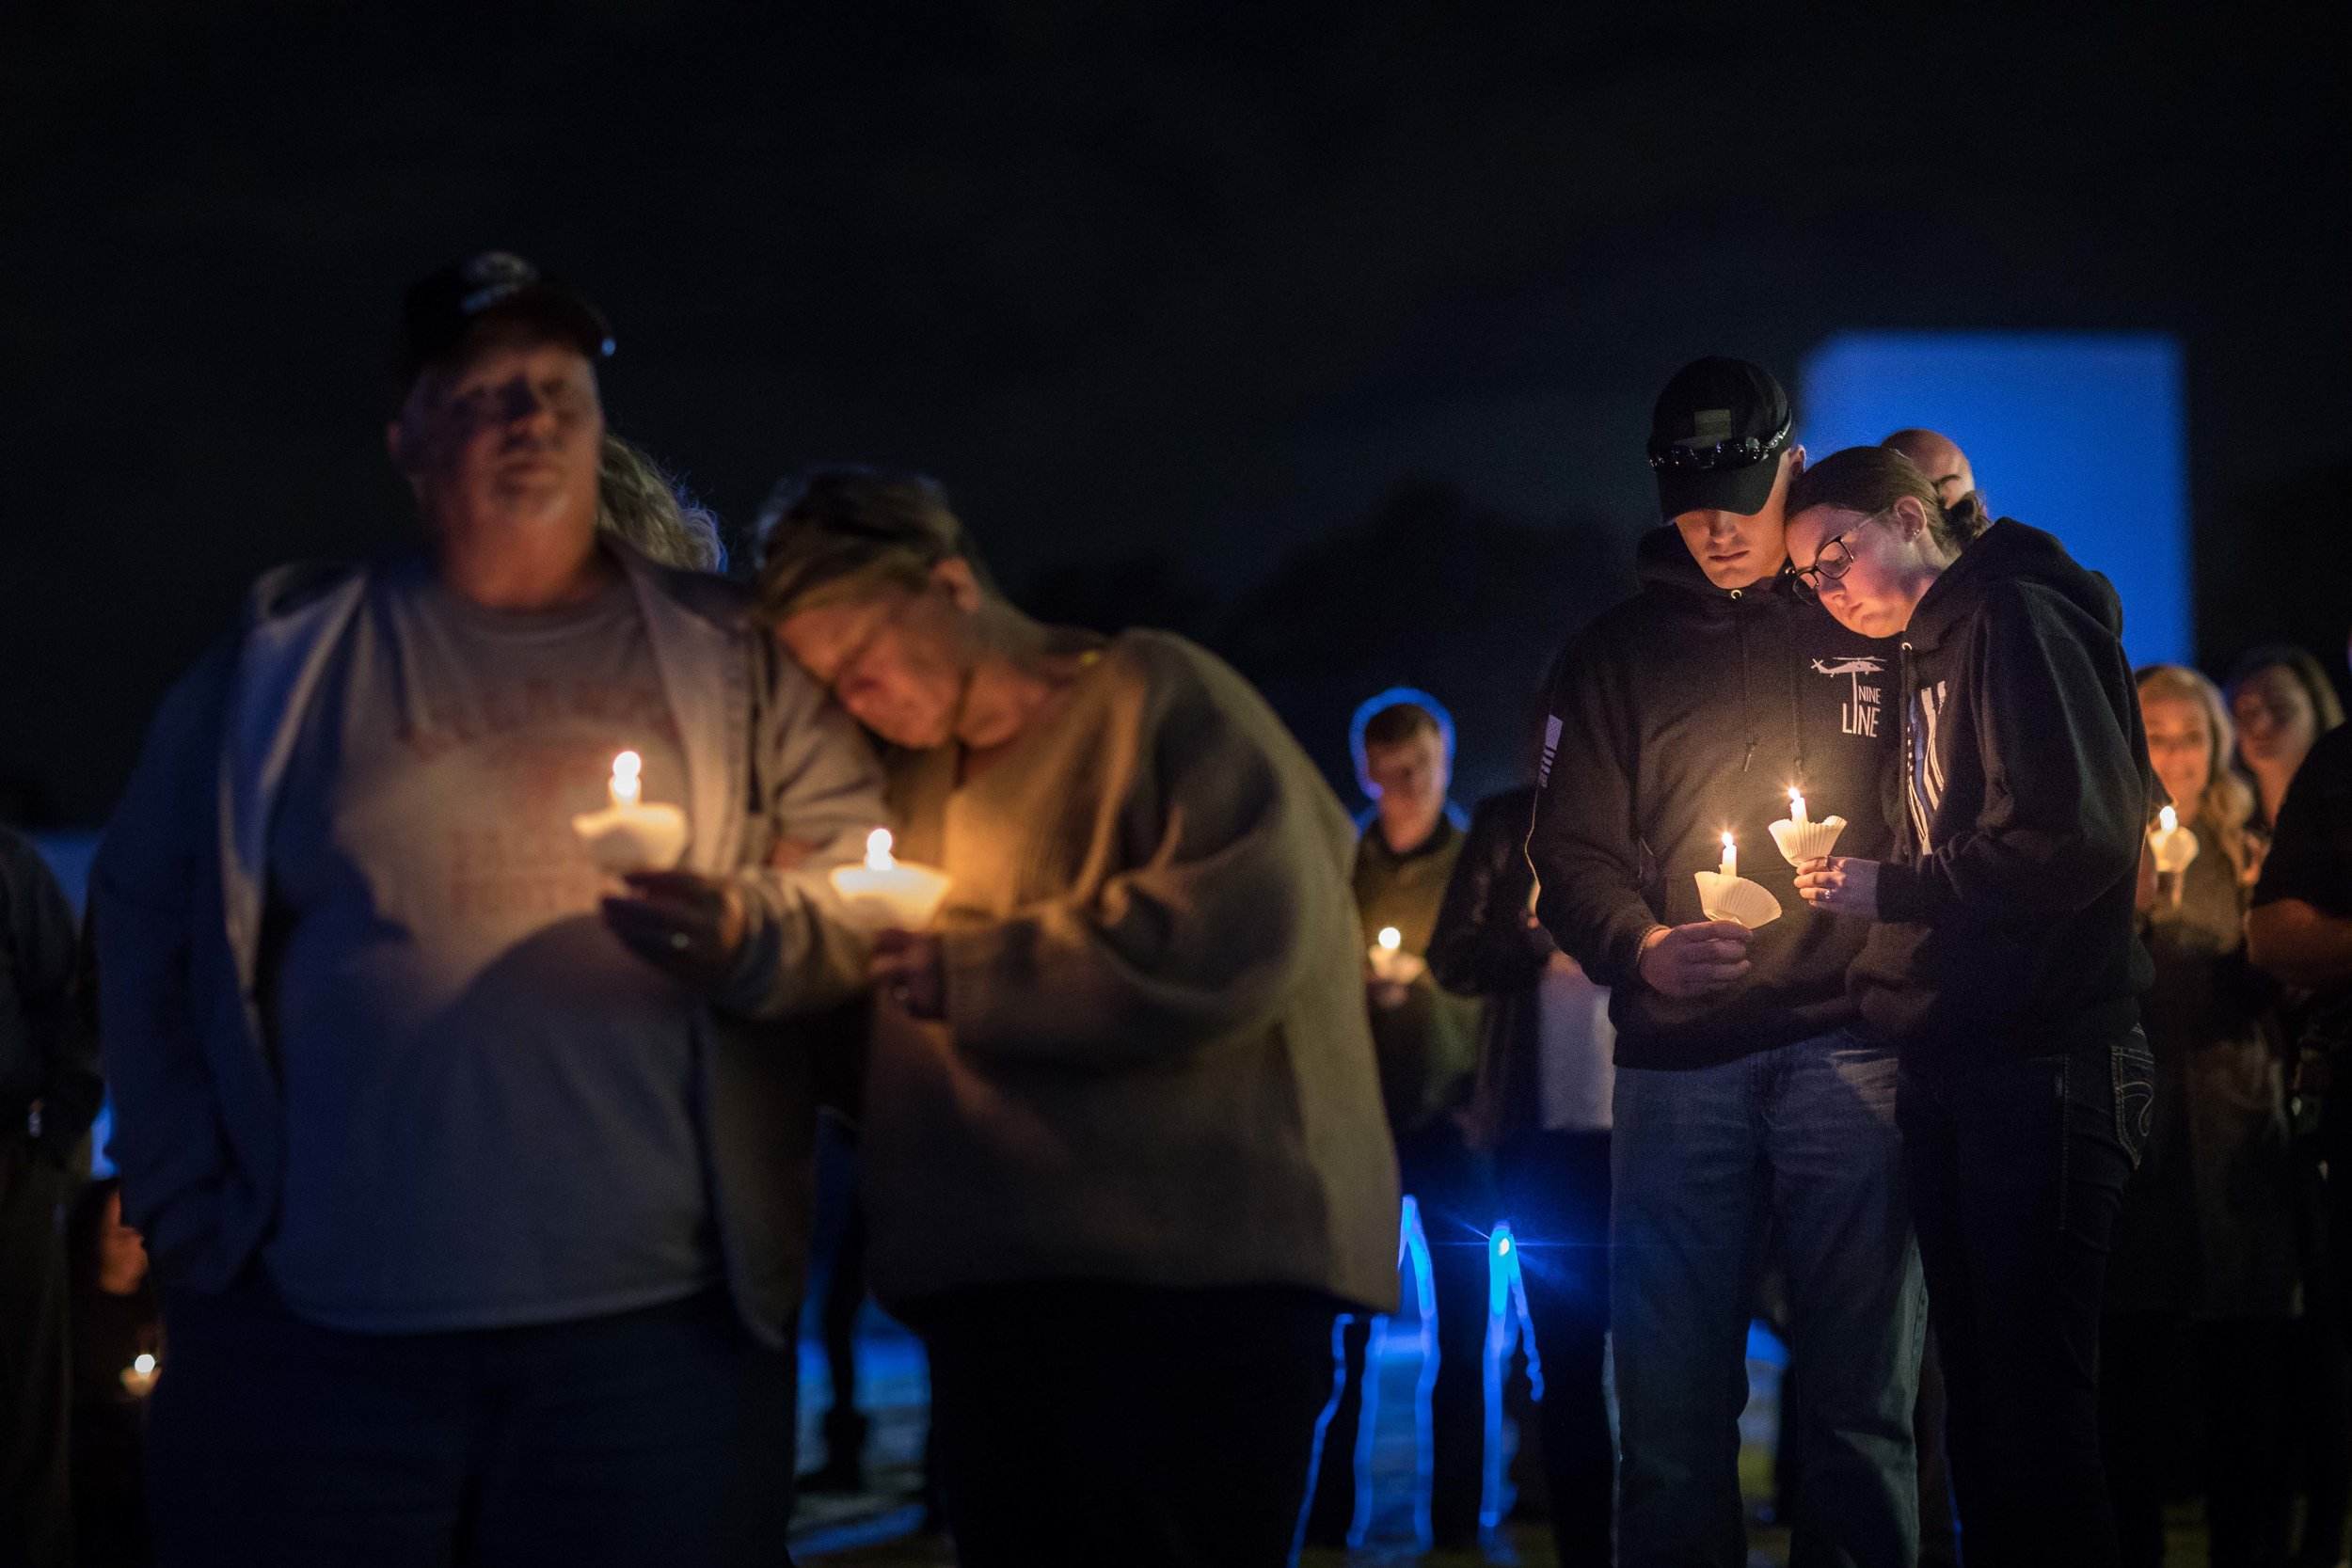 Police officers and members of the community hold candles during a vigil for Gwinnett police officer Antwan Toney, who was killed in the line of duty, at Gwinnett Church, Monday, Oct. 22, 2018, in Sugar Hill, Ga. A Gwinnett County police officer on Monday shot and killed Maynard, 18, accused of fatally shooting police officer Antwan Toney on Saturday near a school in the Atlanta area, police said. (Branden Camp/Atlanta Journal-Constitution via AP)